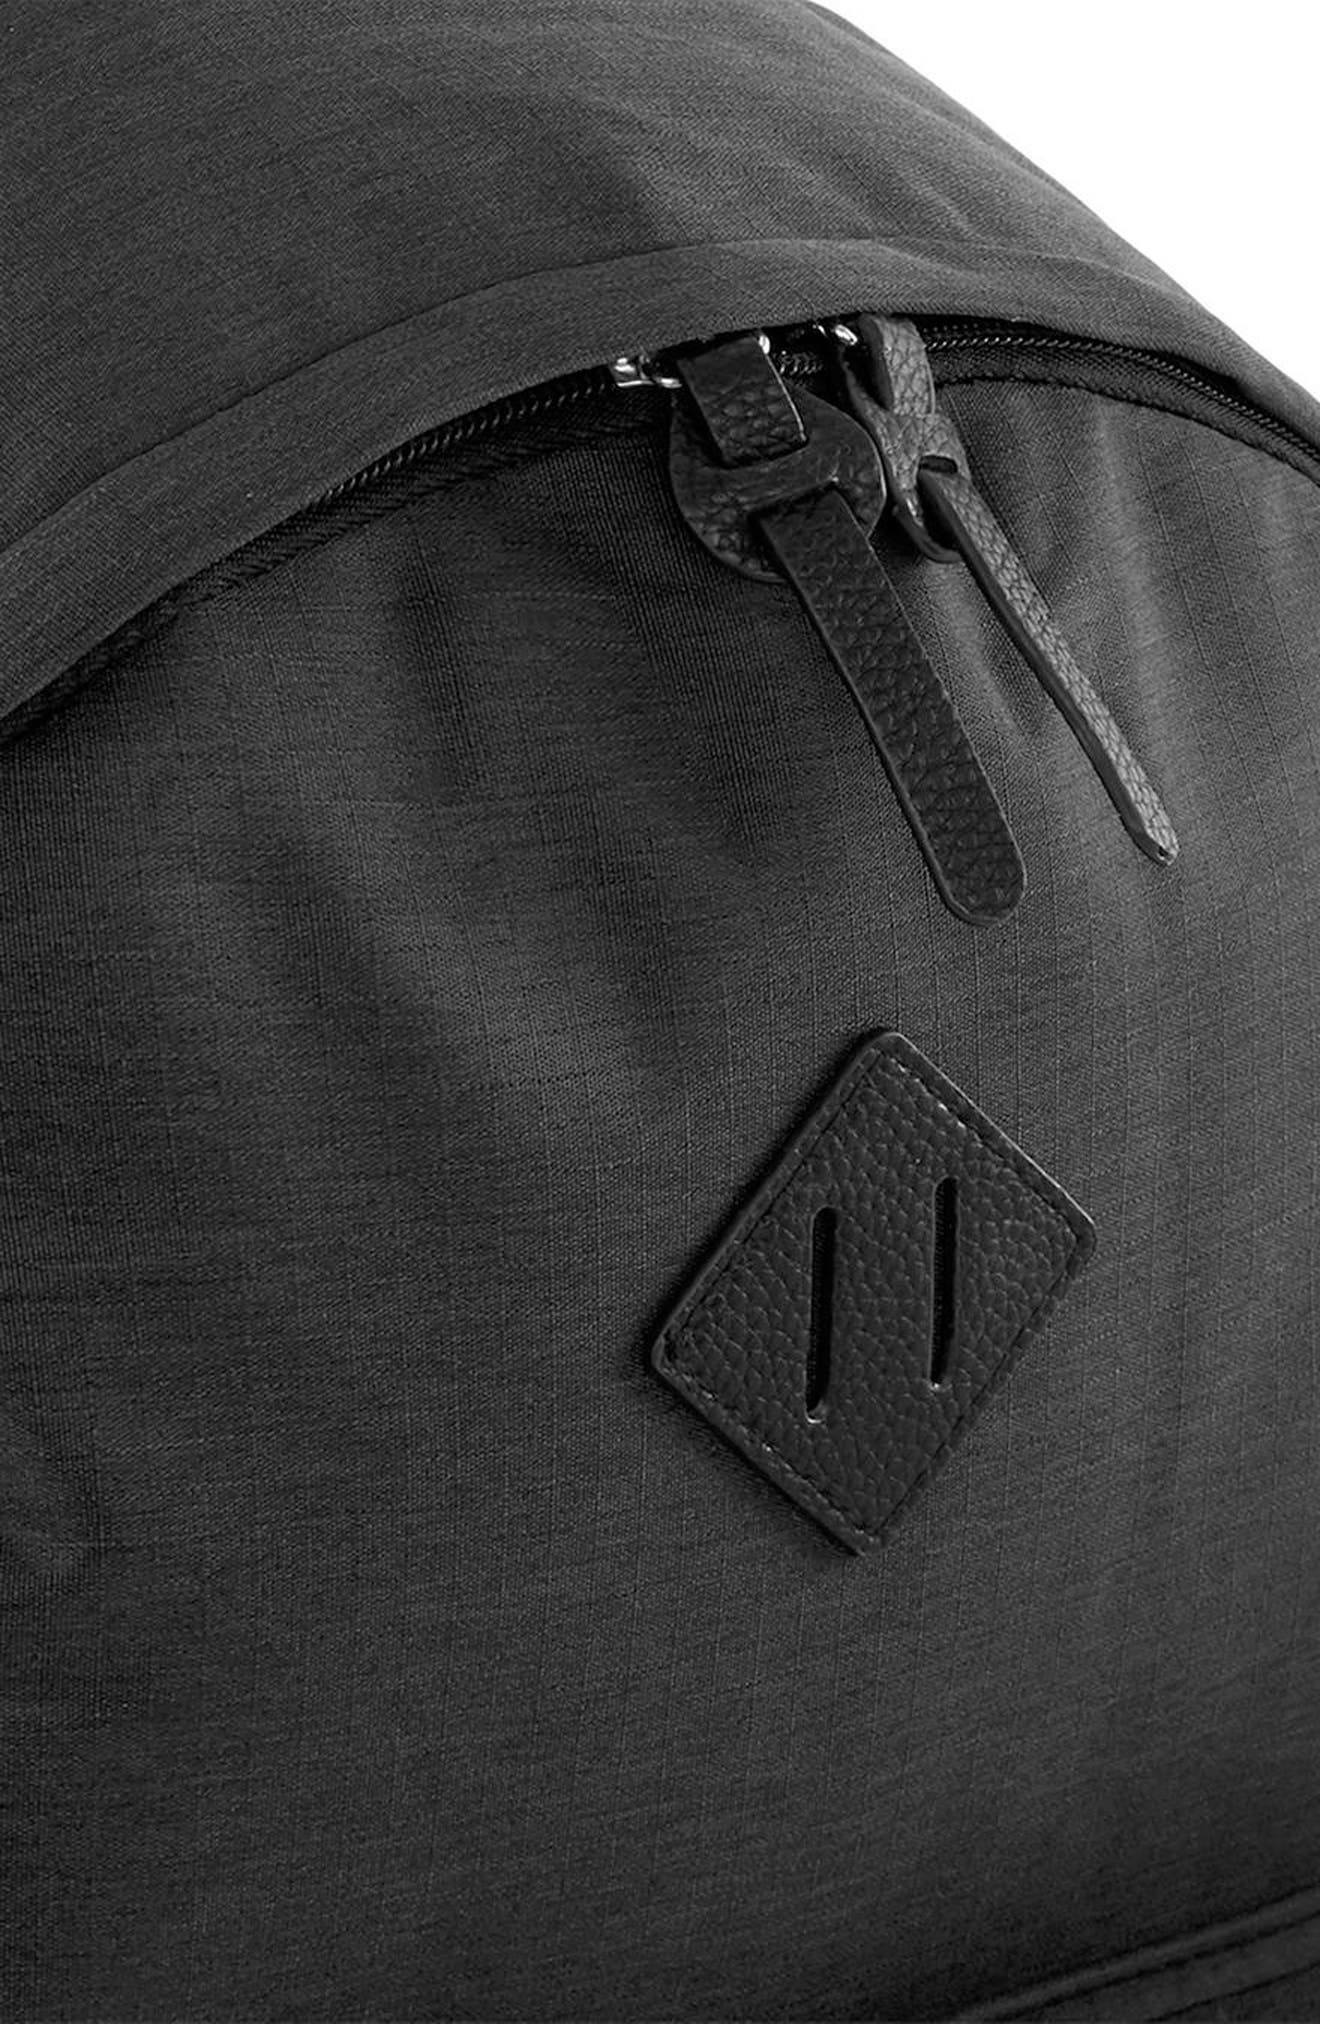 Ripstop Backpack,                             Alternate thumbnail 3, color,                             Black